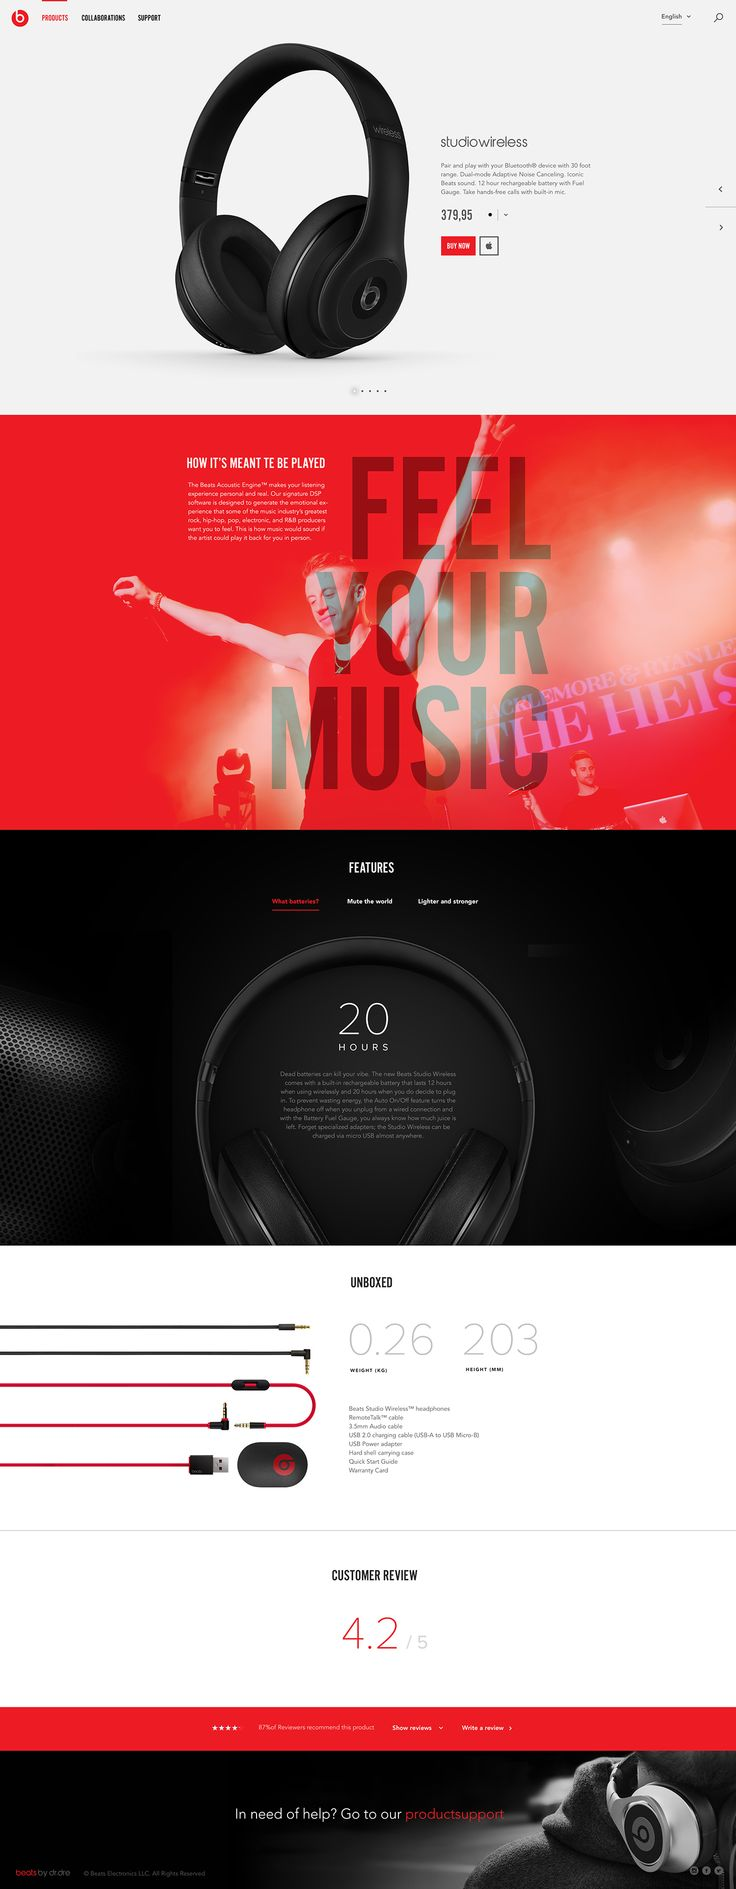 BeatsByDre concept on Behance